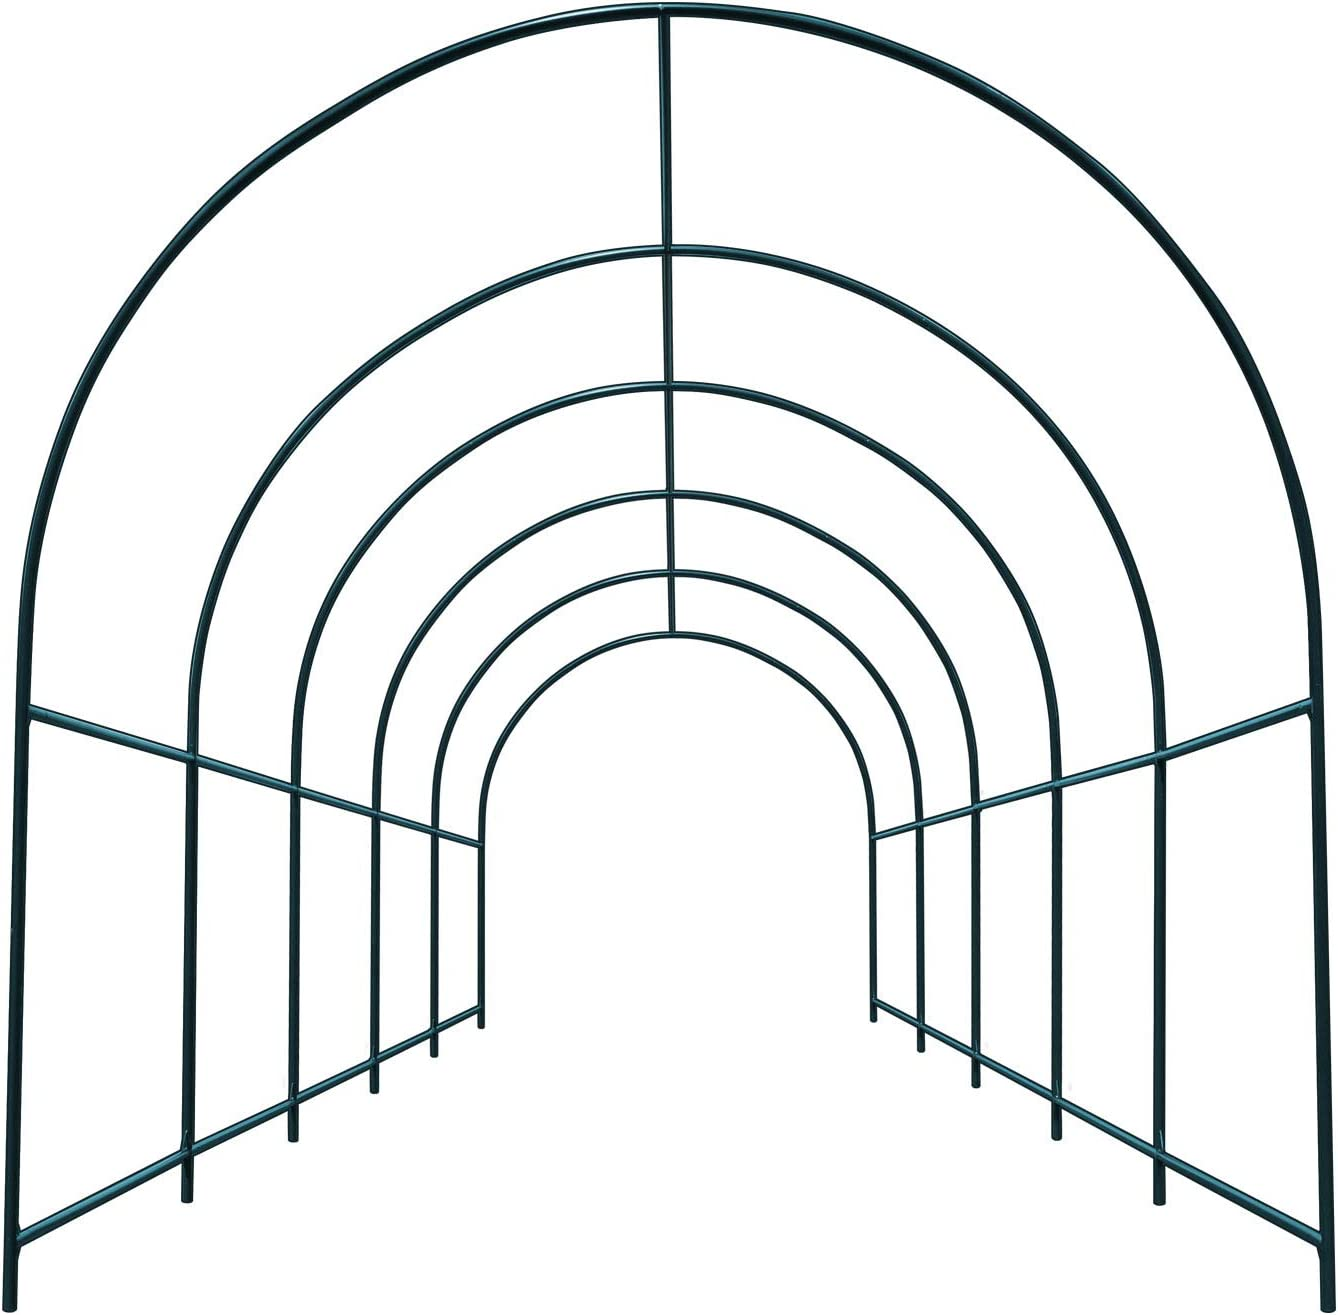 YardGrow Large Size Metal Garden Arbor Arch for Various Climbing Plant Roses Vines Birthday Wedding Party Decoration Pergola Arbor Climbing Support Frame (16.4 x 7 x 7.2ft)